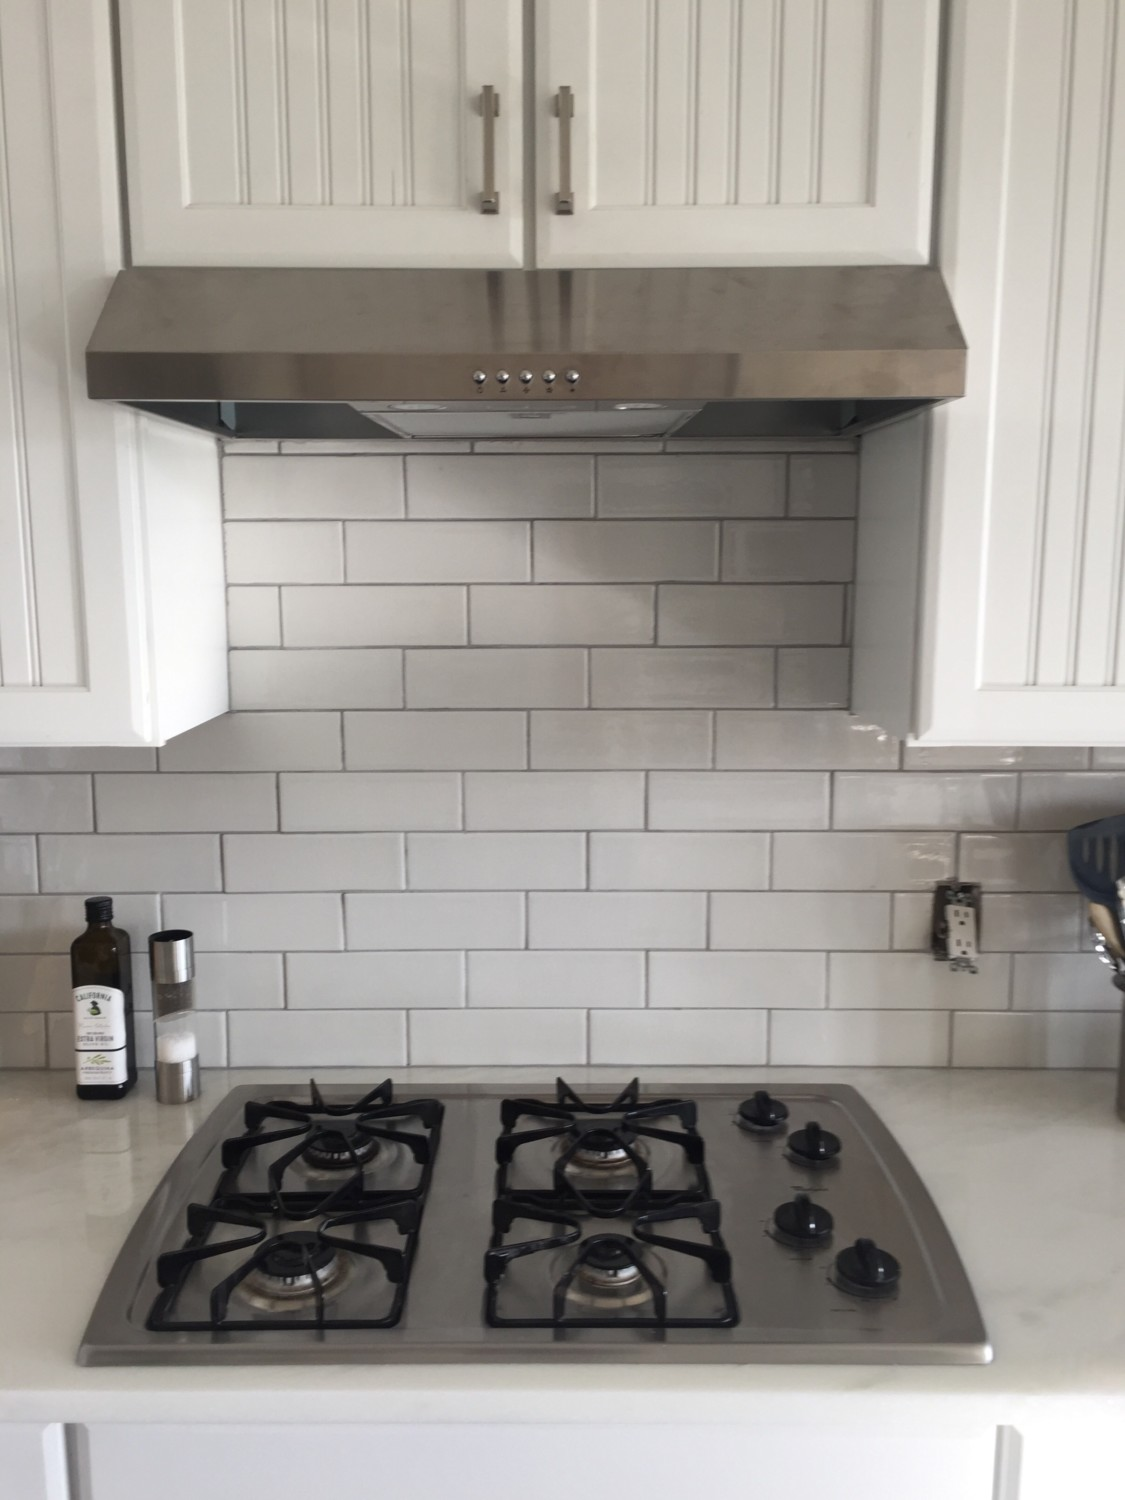 The kitchen has been completely renovated with fresh white cabinets - The Gigantic Oversized Over The Range Microwave Has Been Replaced With This Sleek Stainless Steel Vent Hood And A Classic White Subway Tile Backsplash